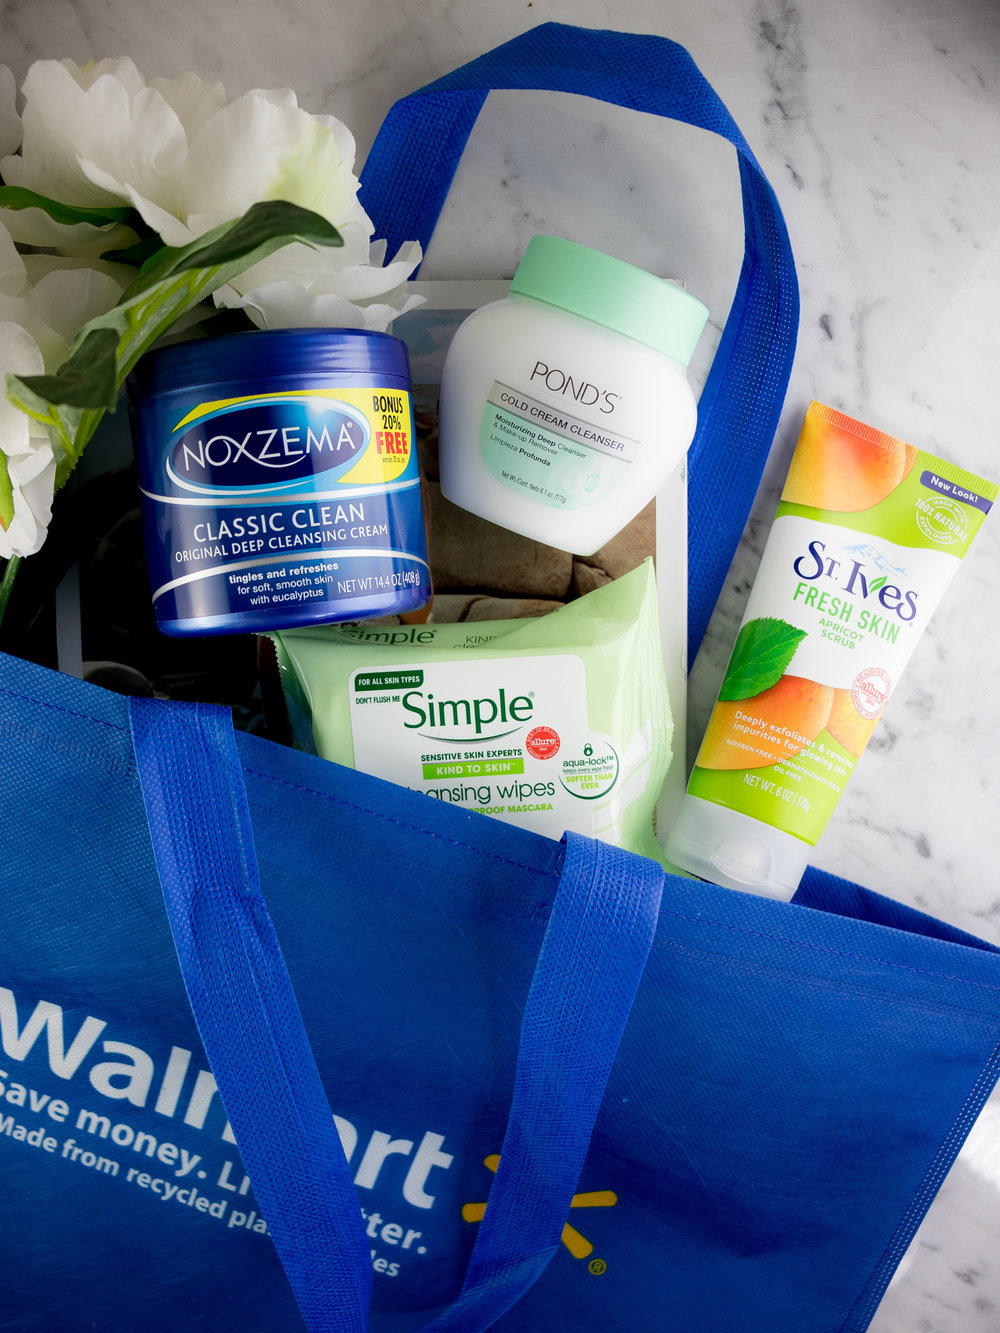 Favorite Skin Care Products from Walmart